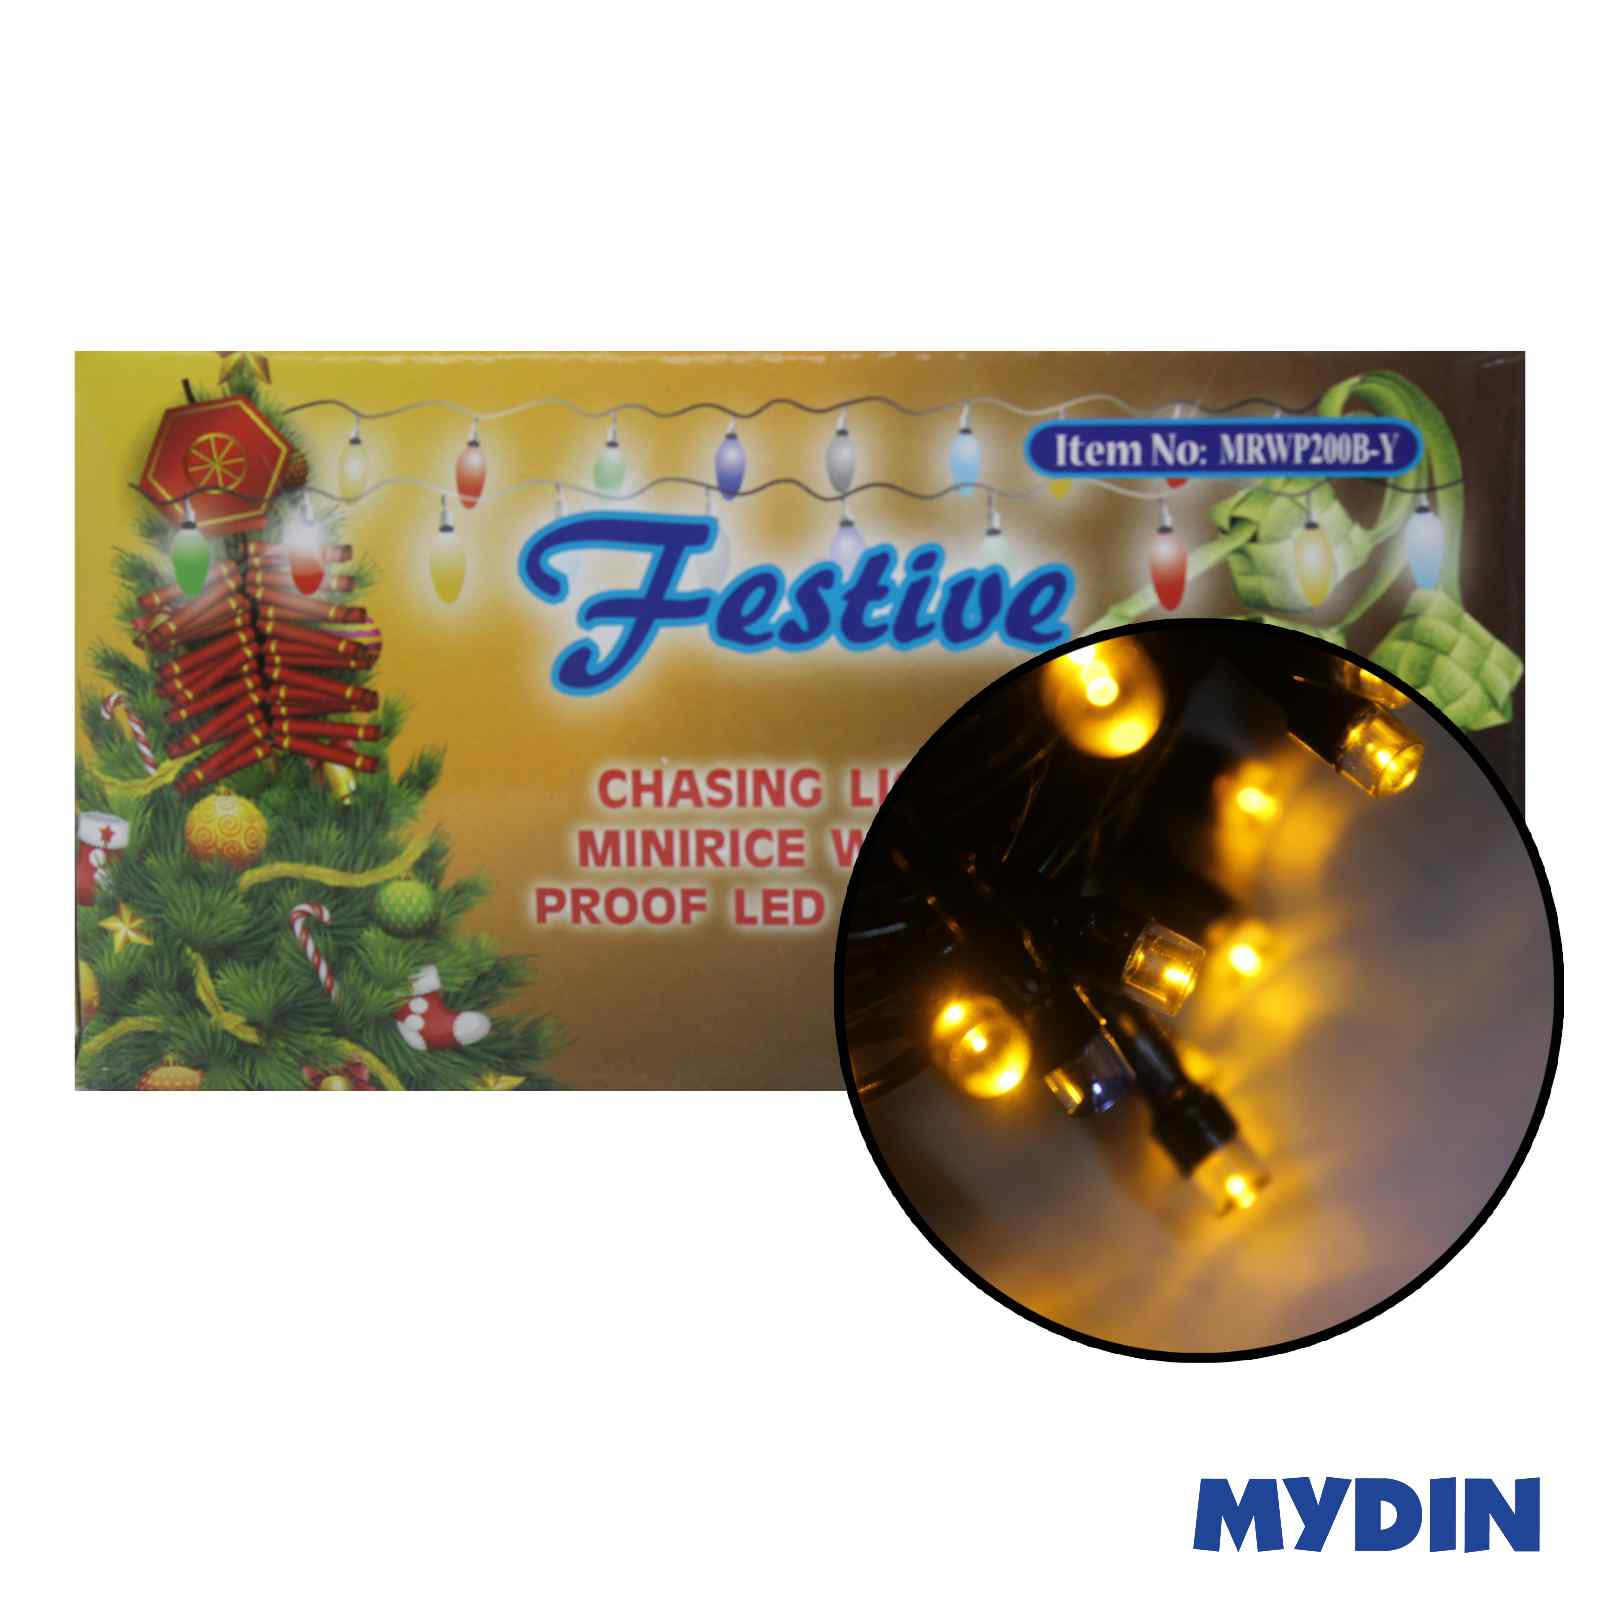 Festive Chasing Light Mini Rice Water Proof LED Yellow Clear